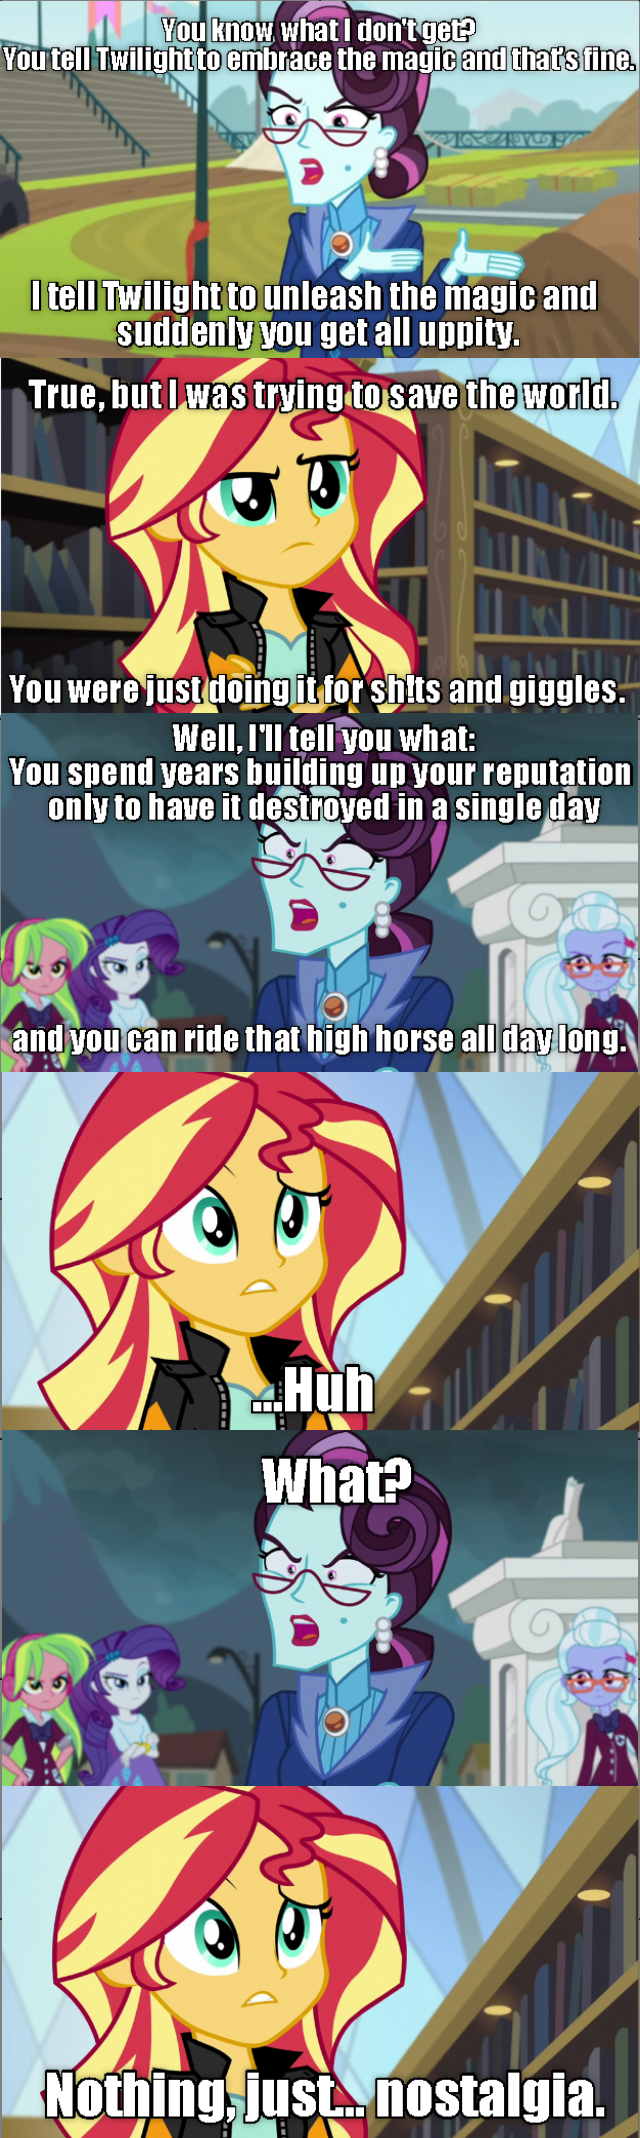 principal cinch equestria girls screencap comic sunset shimmer friendship games - 9067576832